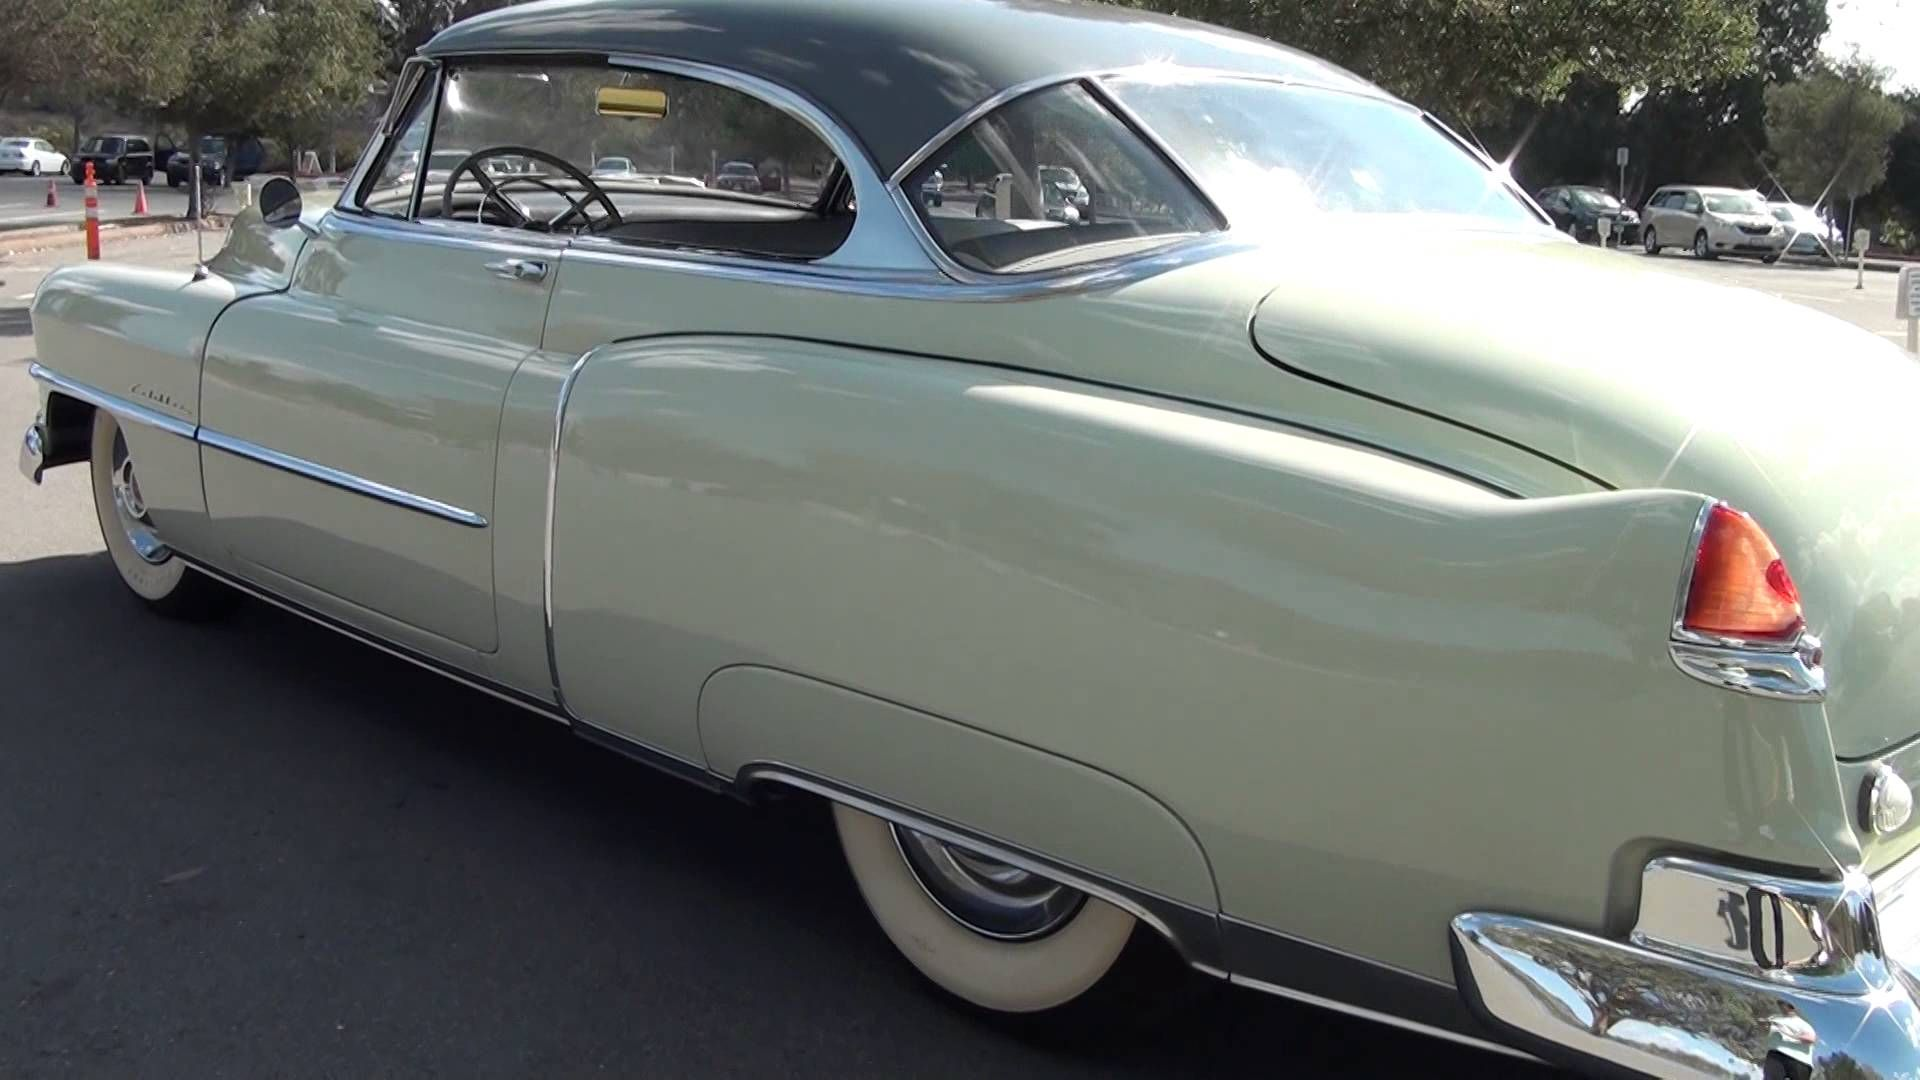 1950 Cadillac Best Of The Best For Sale By Precious Metals San Diego